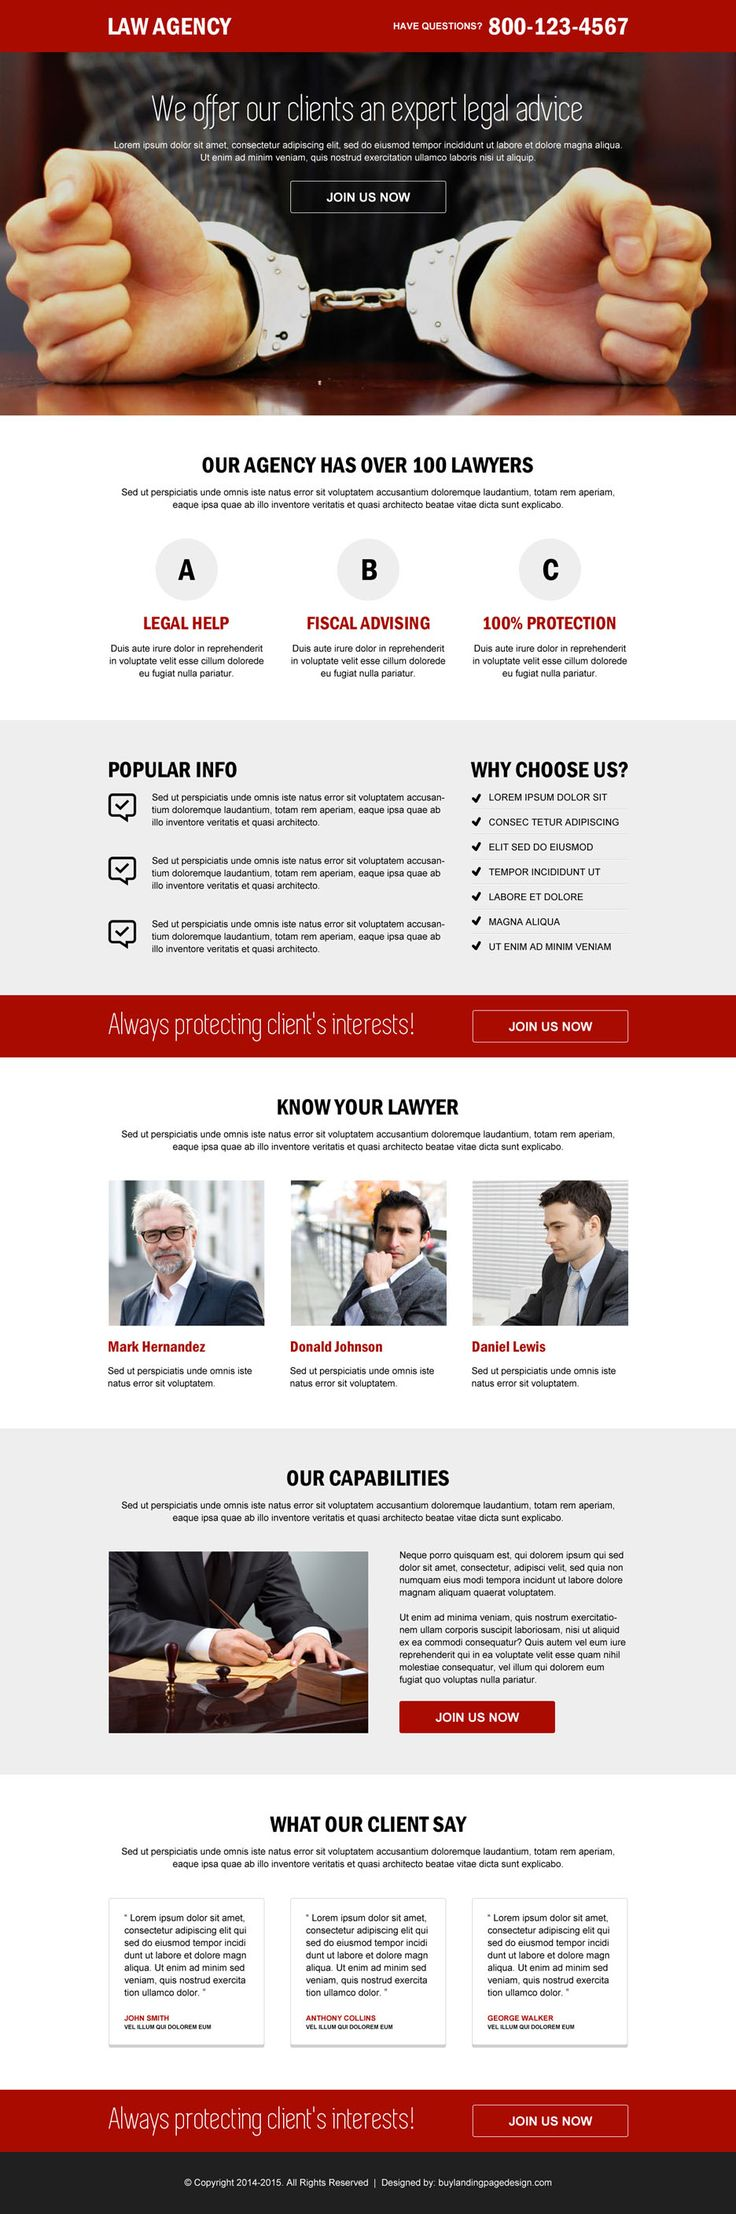 Best mobile responsive landing page design for top marketers business conversion from  https://www.buylandingpagedesign.com/responsive-landing-page-design/